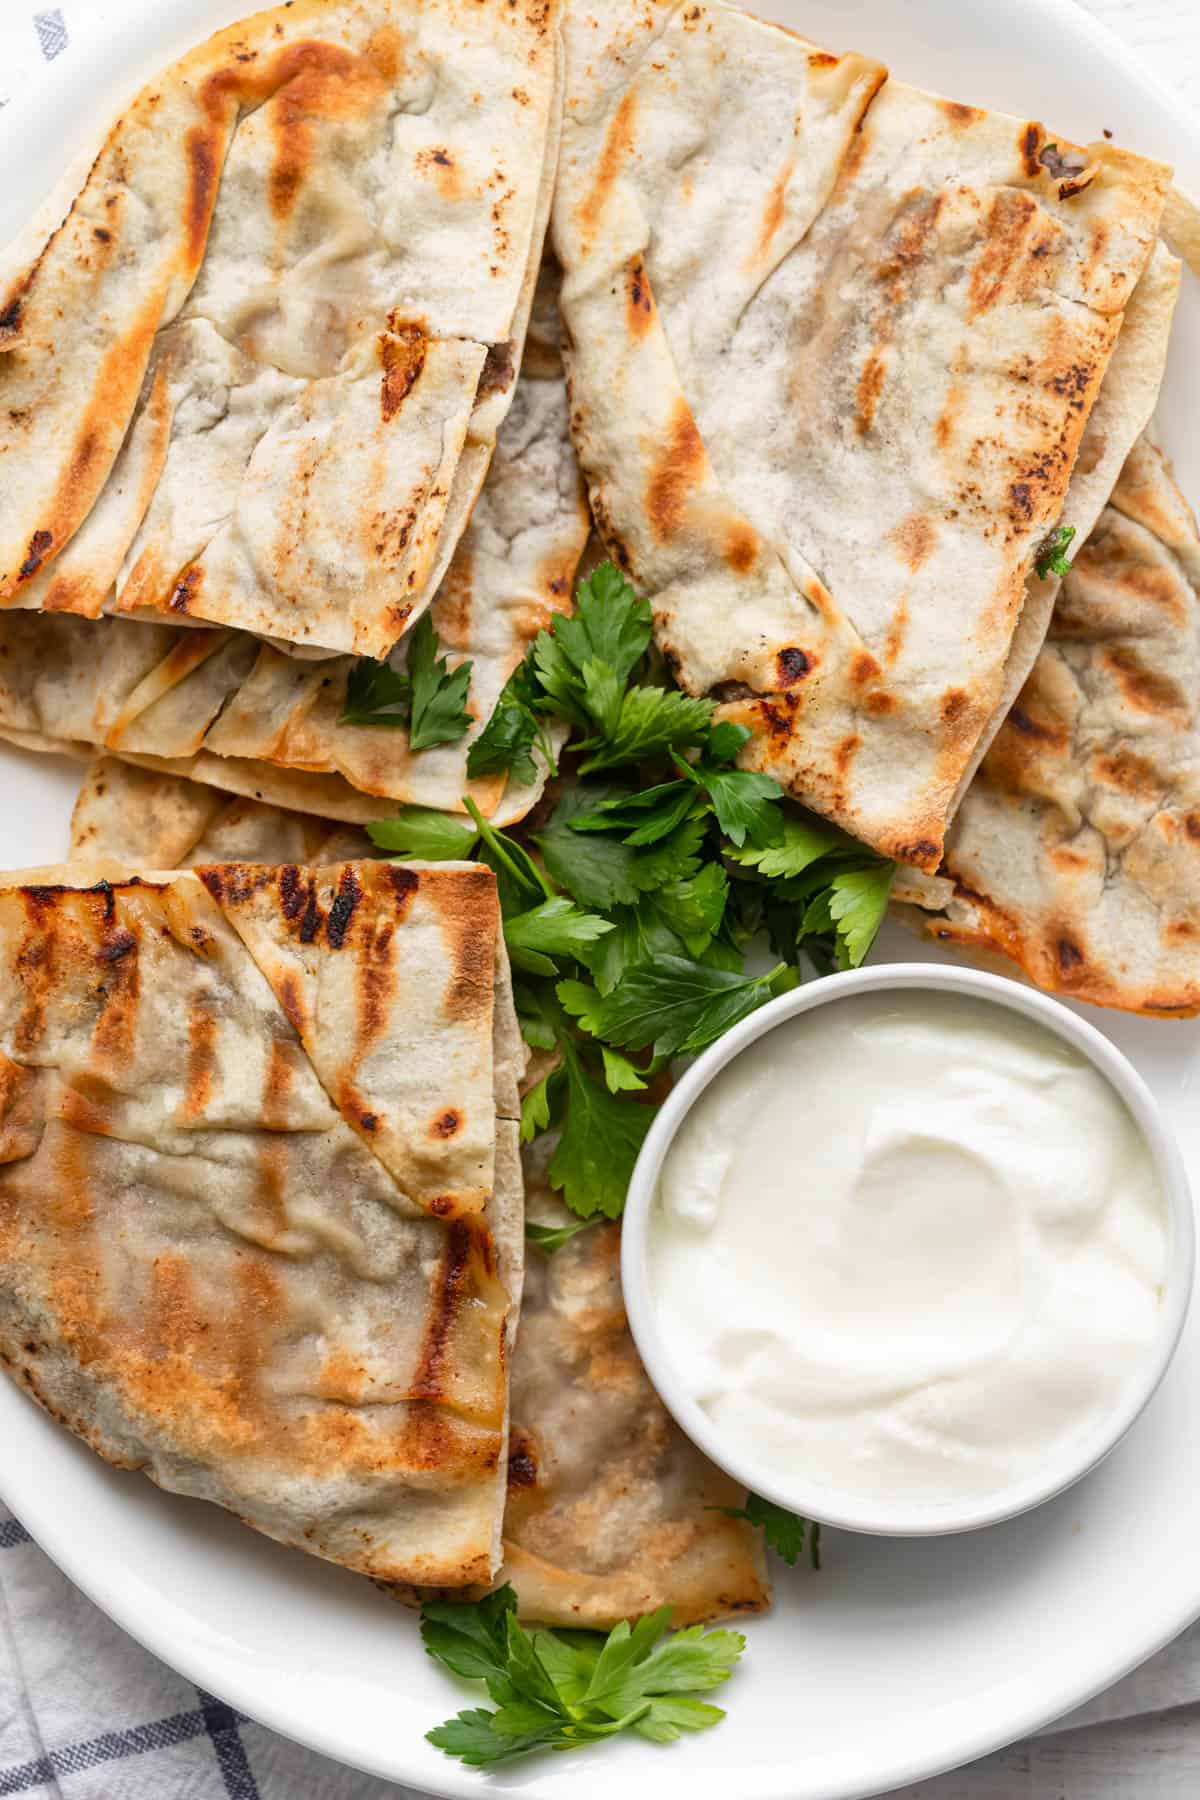 Final serving of the meat stuffed pitas (arayes) with yogurt and parsley